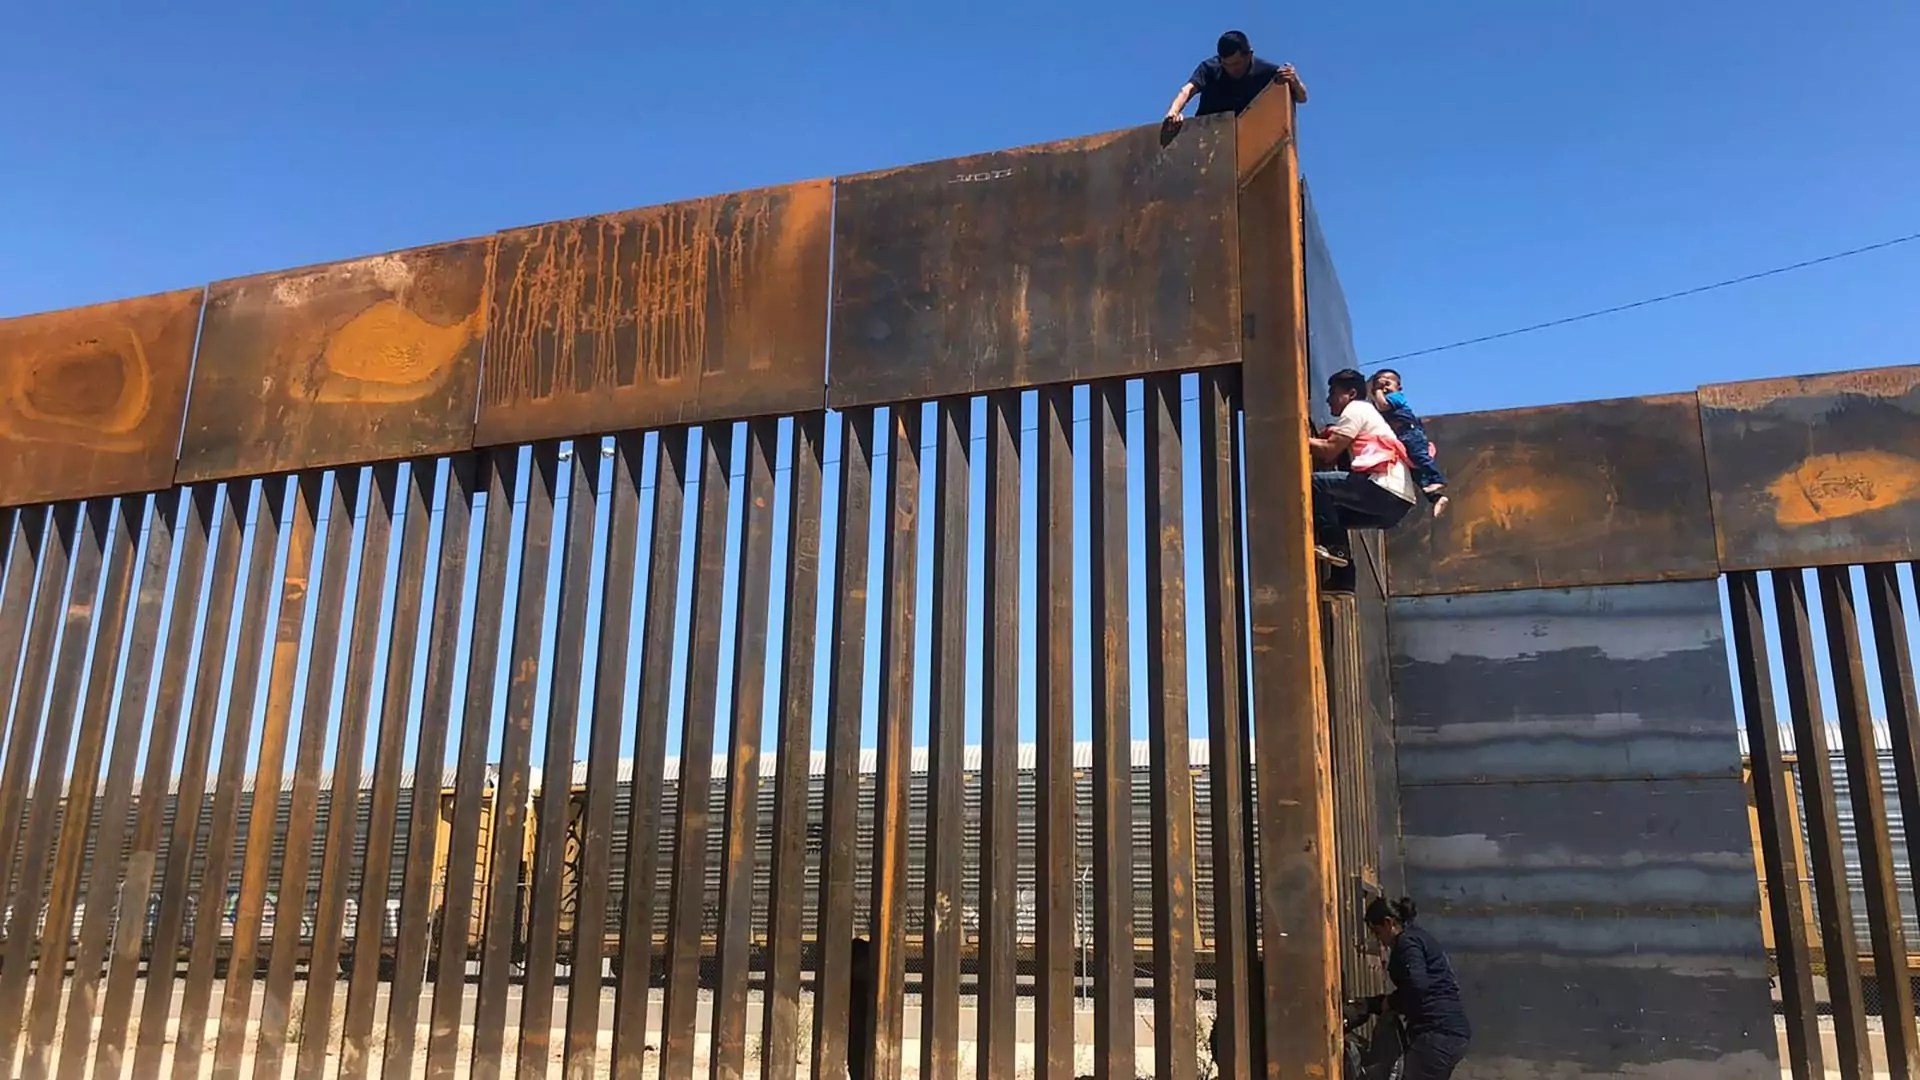 People climb over a border wall in the southern United States.